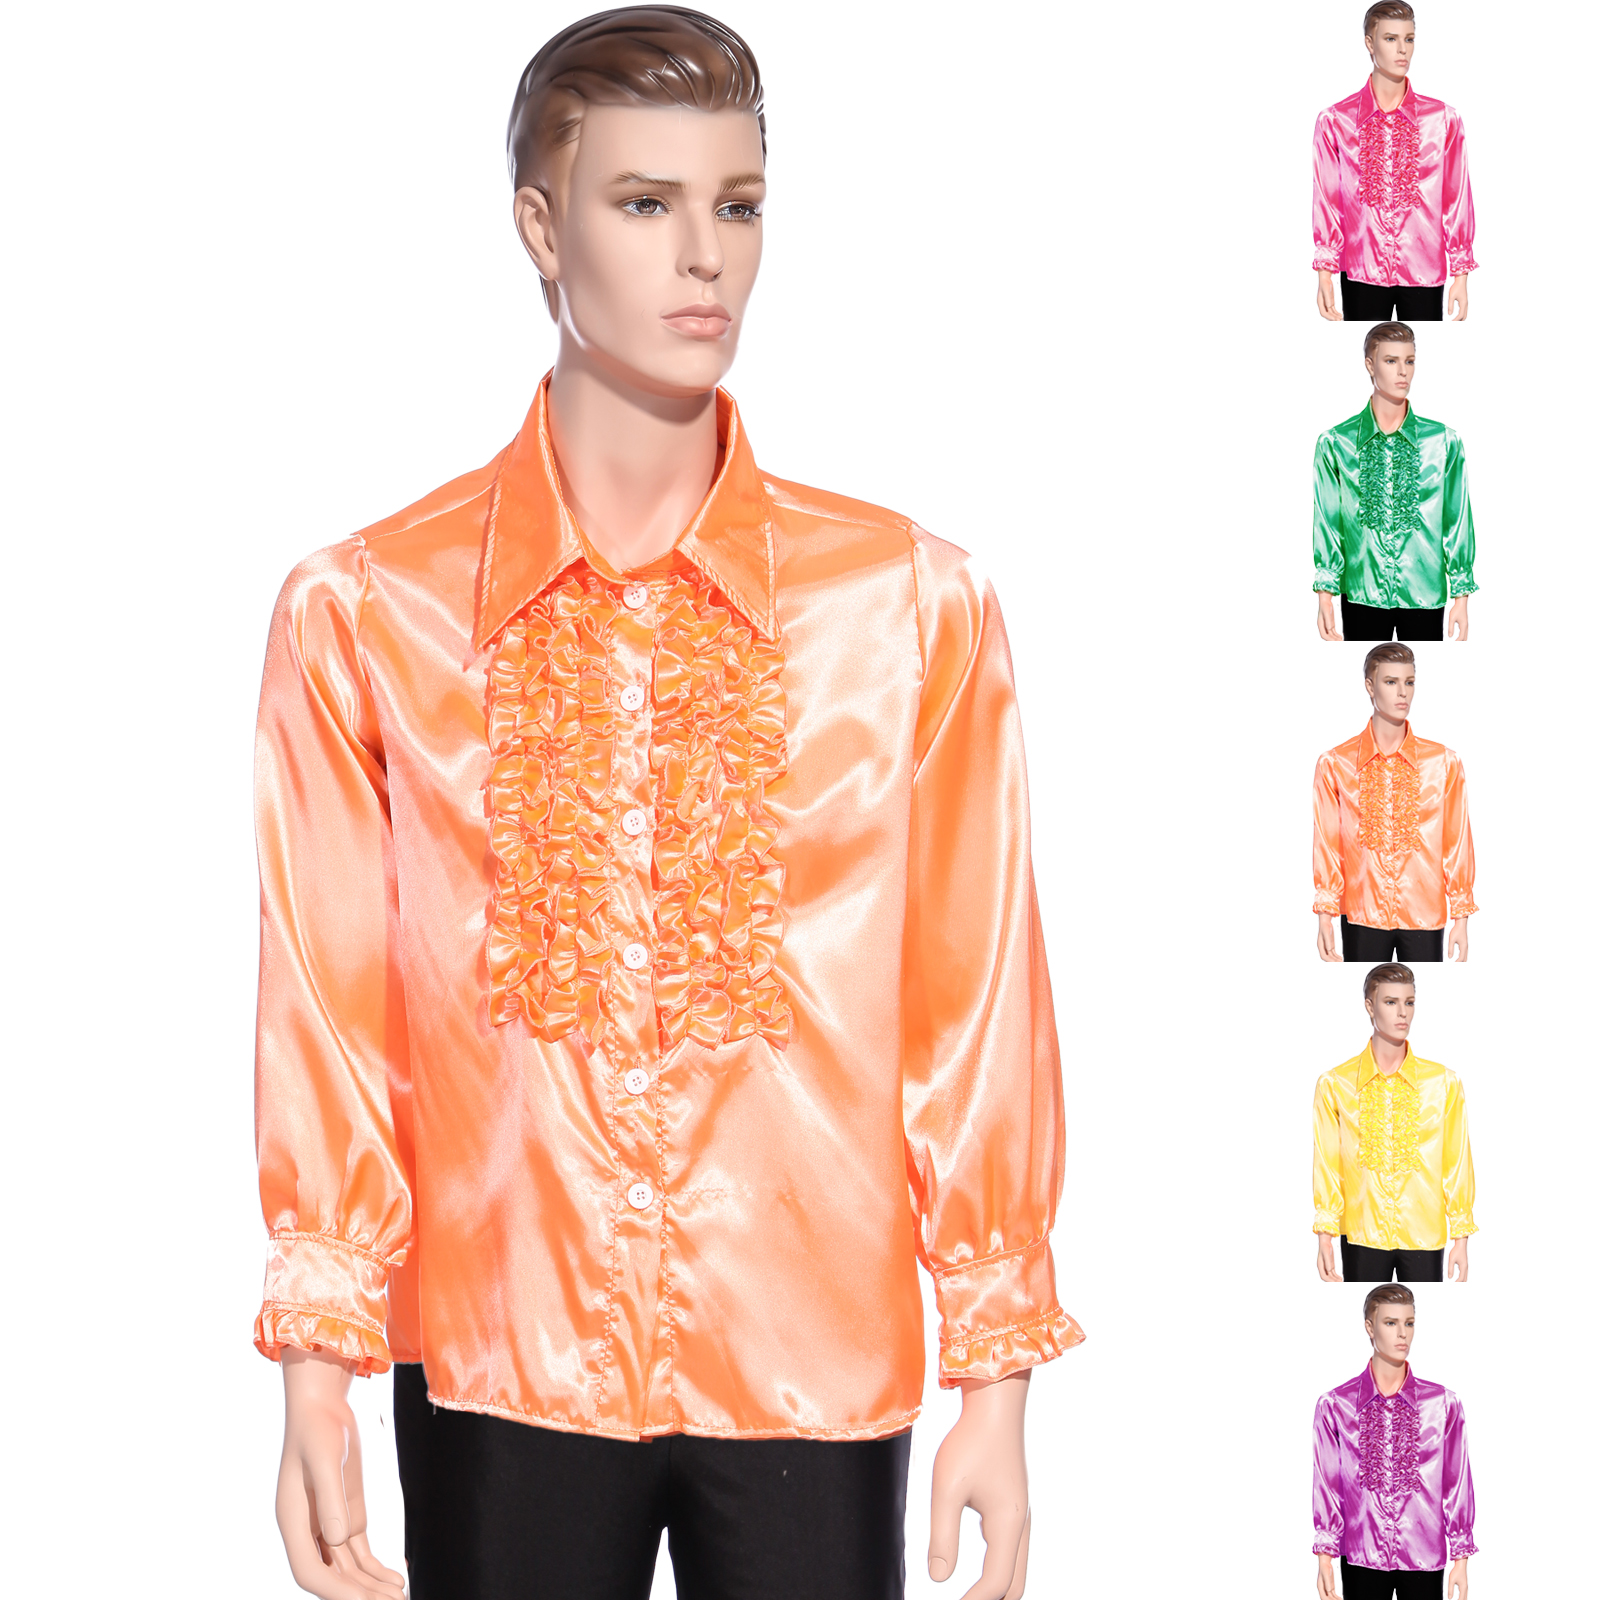 haut chemise a frou frou disco deguisement costume halloween homme annee 70 1970 ebay. Black Bedroom Furniture Sets. Home Design Ideas